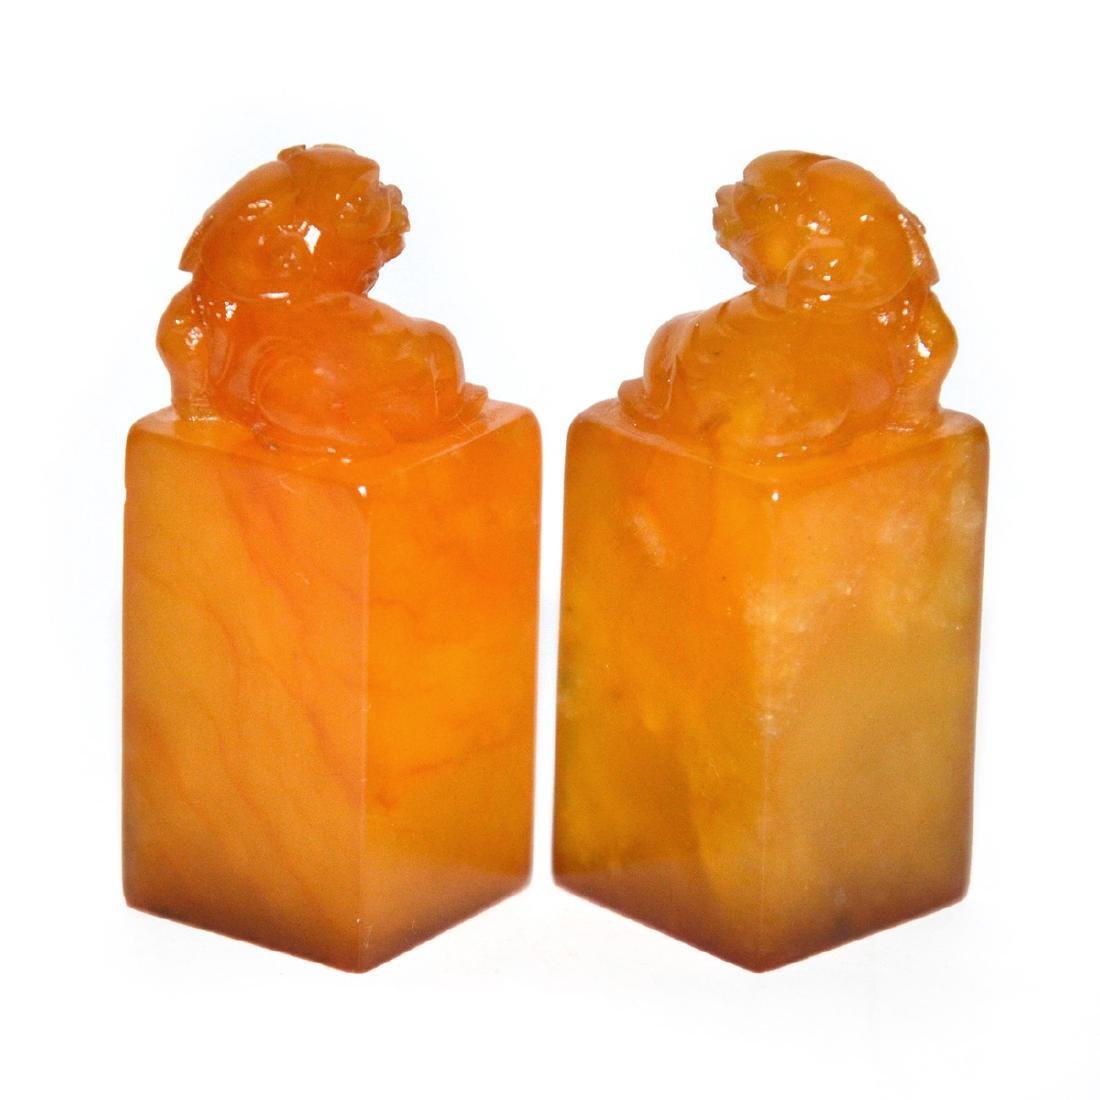 A Pair of Yellow Furong Stone Seals with 'Fu ' Box and - 5